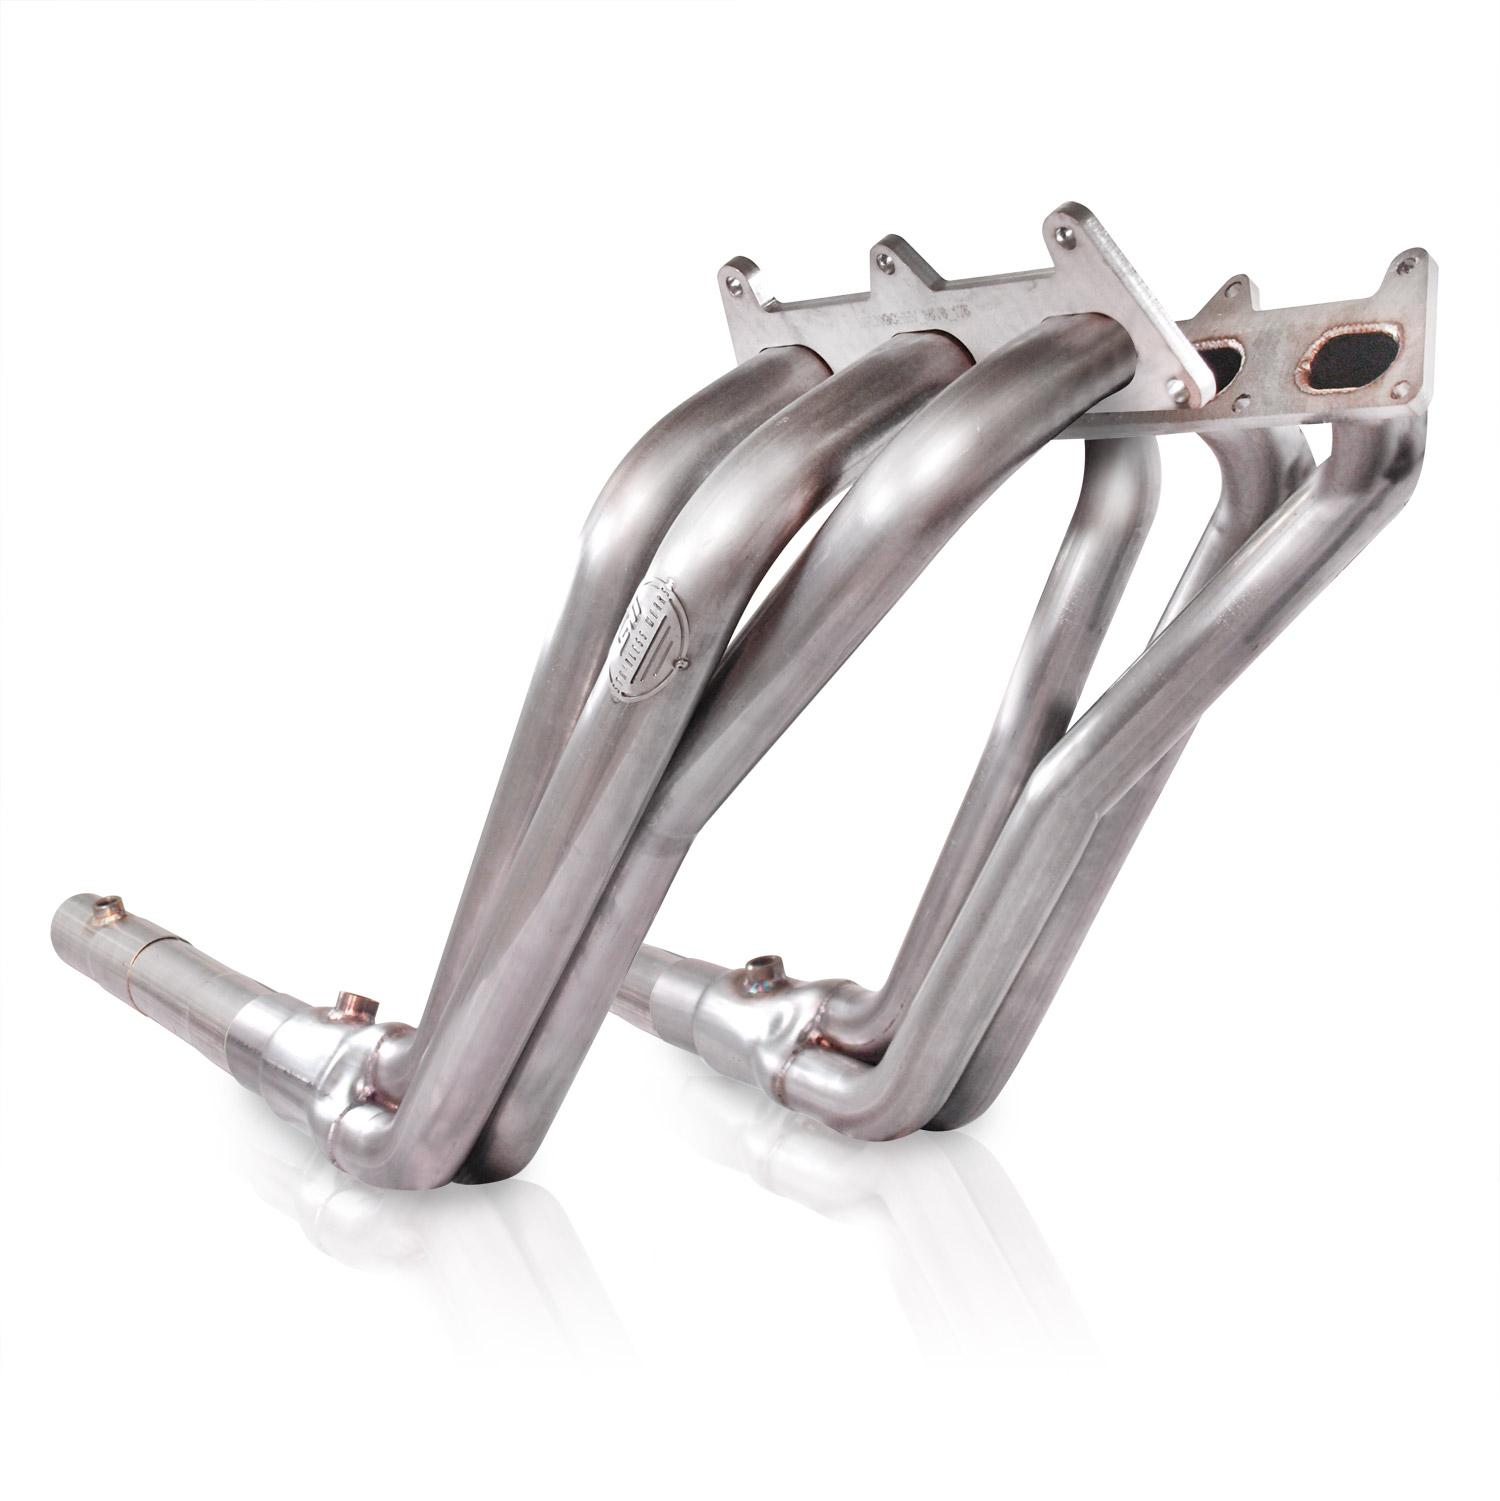 "2010+ Camaro V6 Stainless Works Long Tube 1-5/8"" Primaries w/Offroad Pipes"